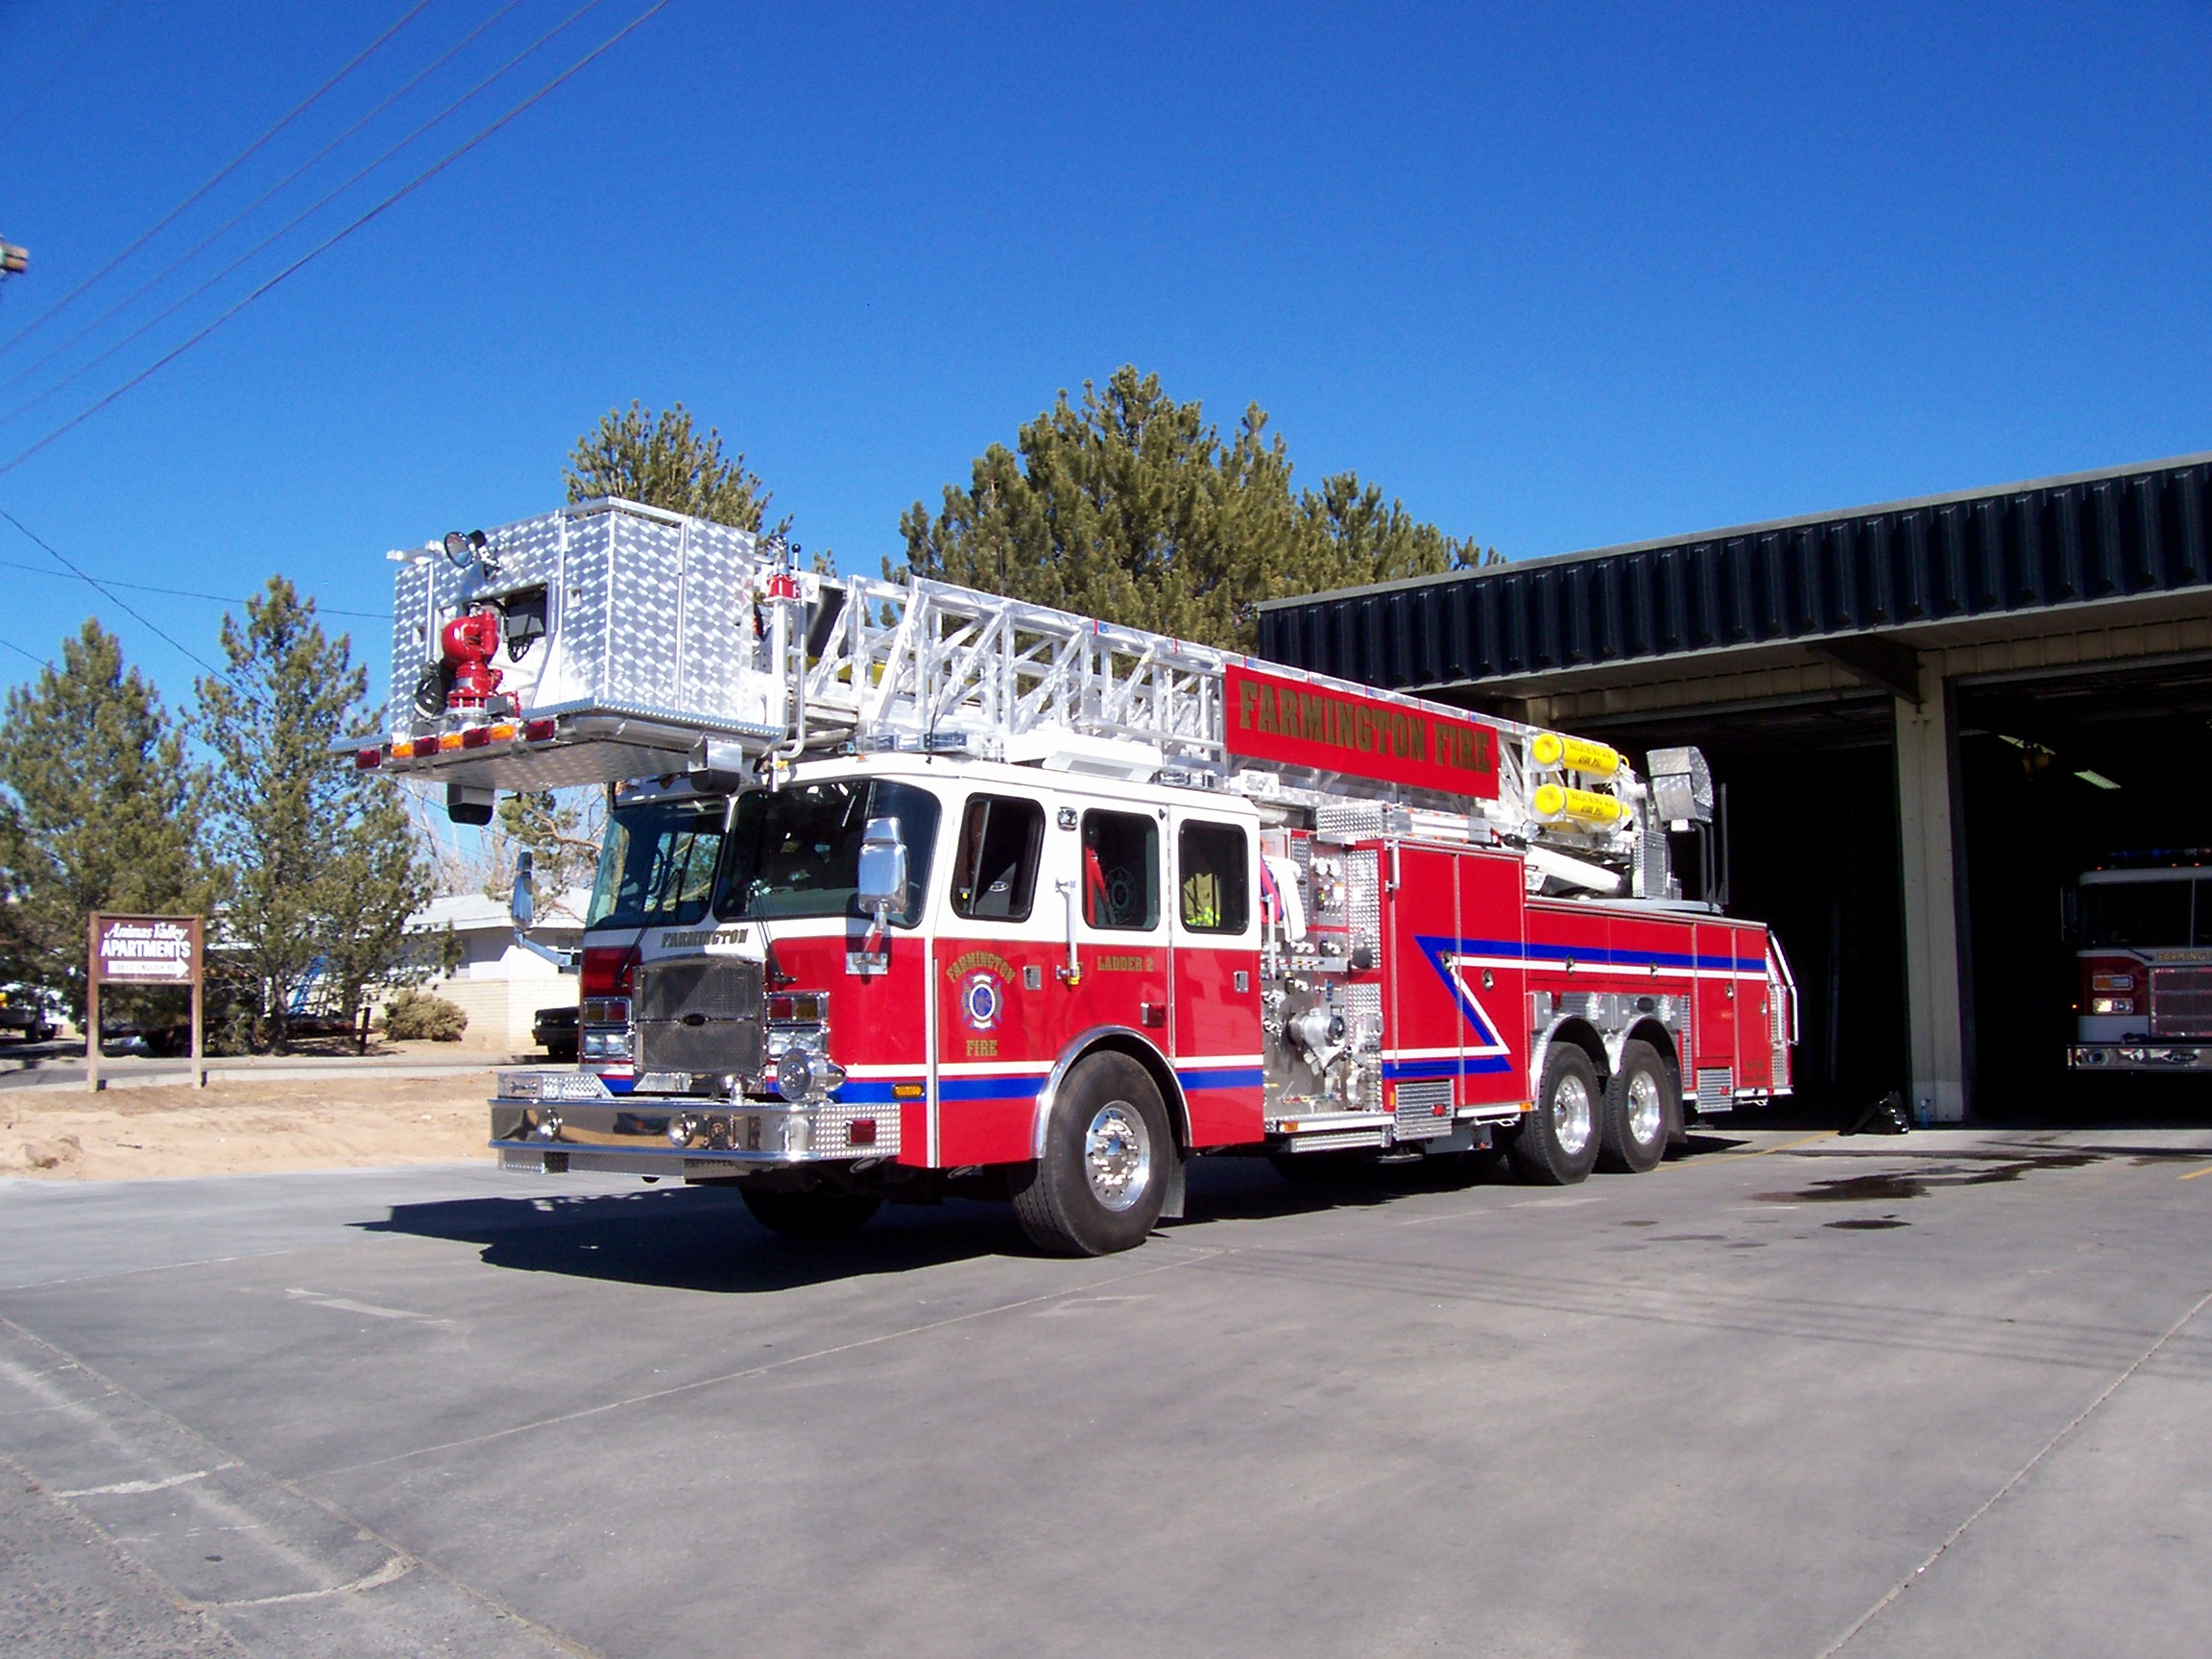 Ladder 2 left side best.JPG